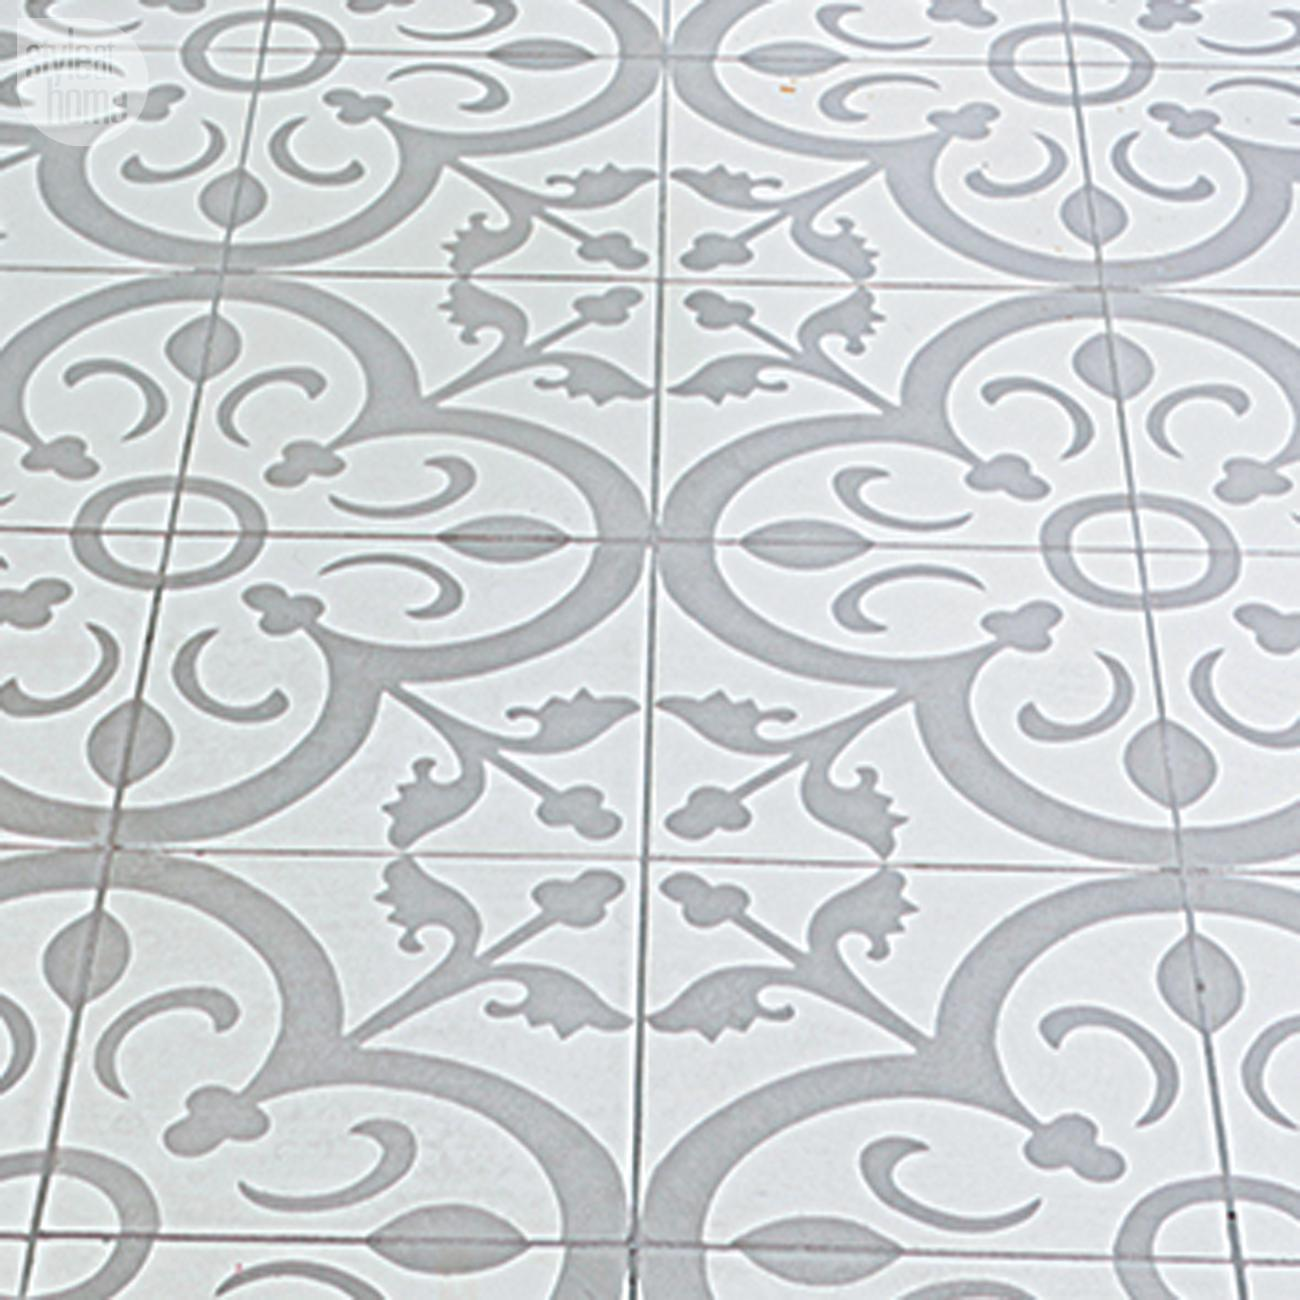 Granada Tiles Normandy Cement Tiles Calm As Bathroom Floor Tile